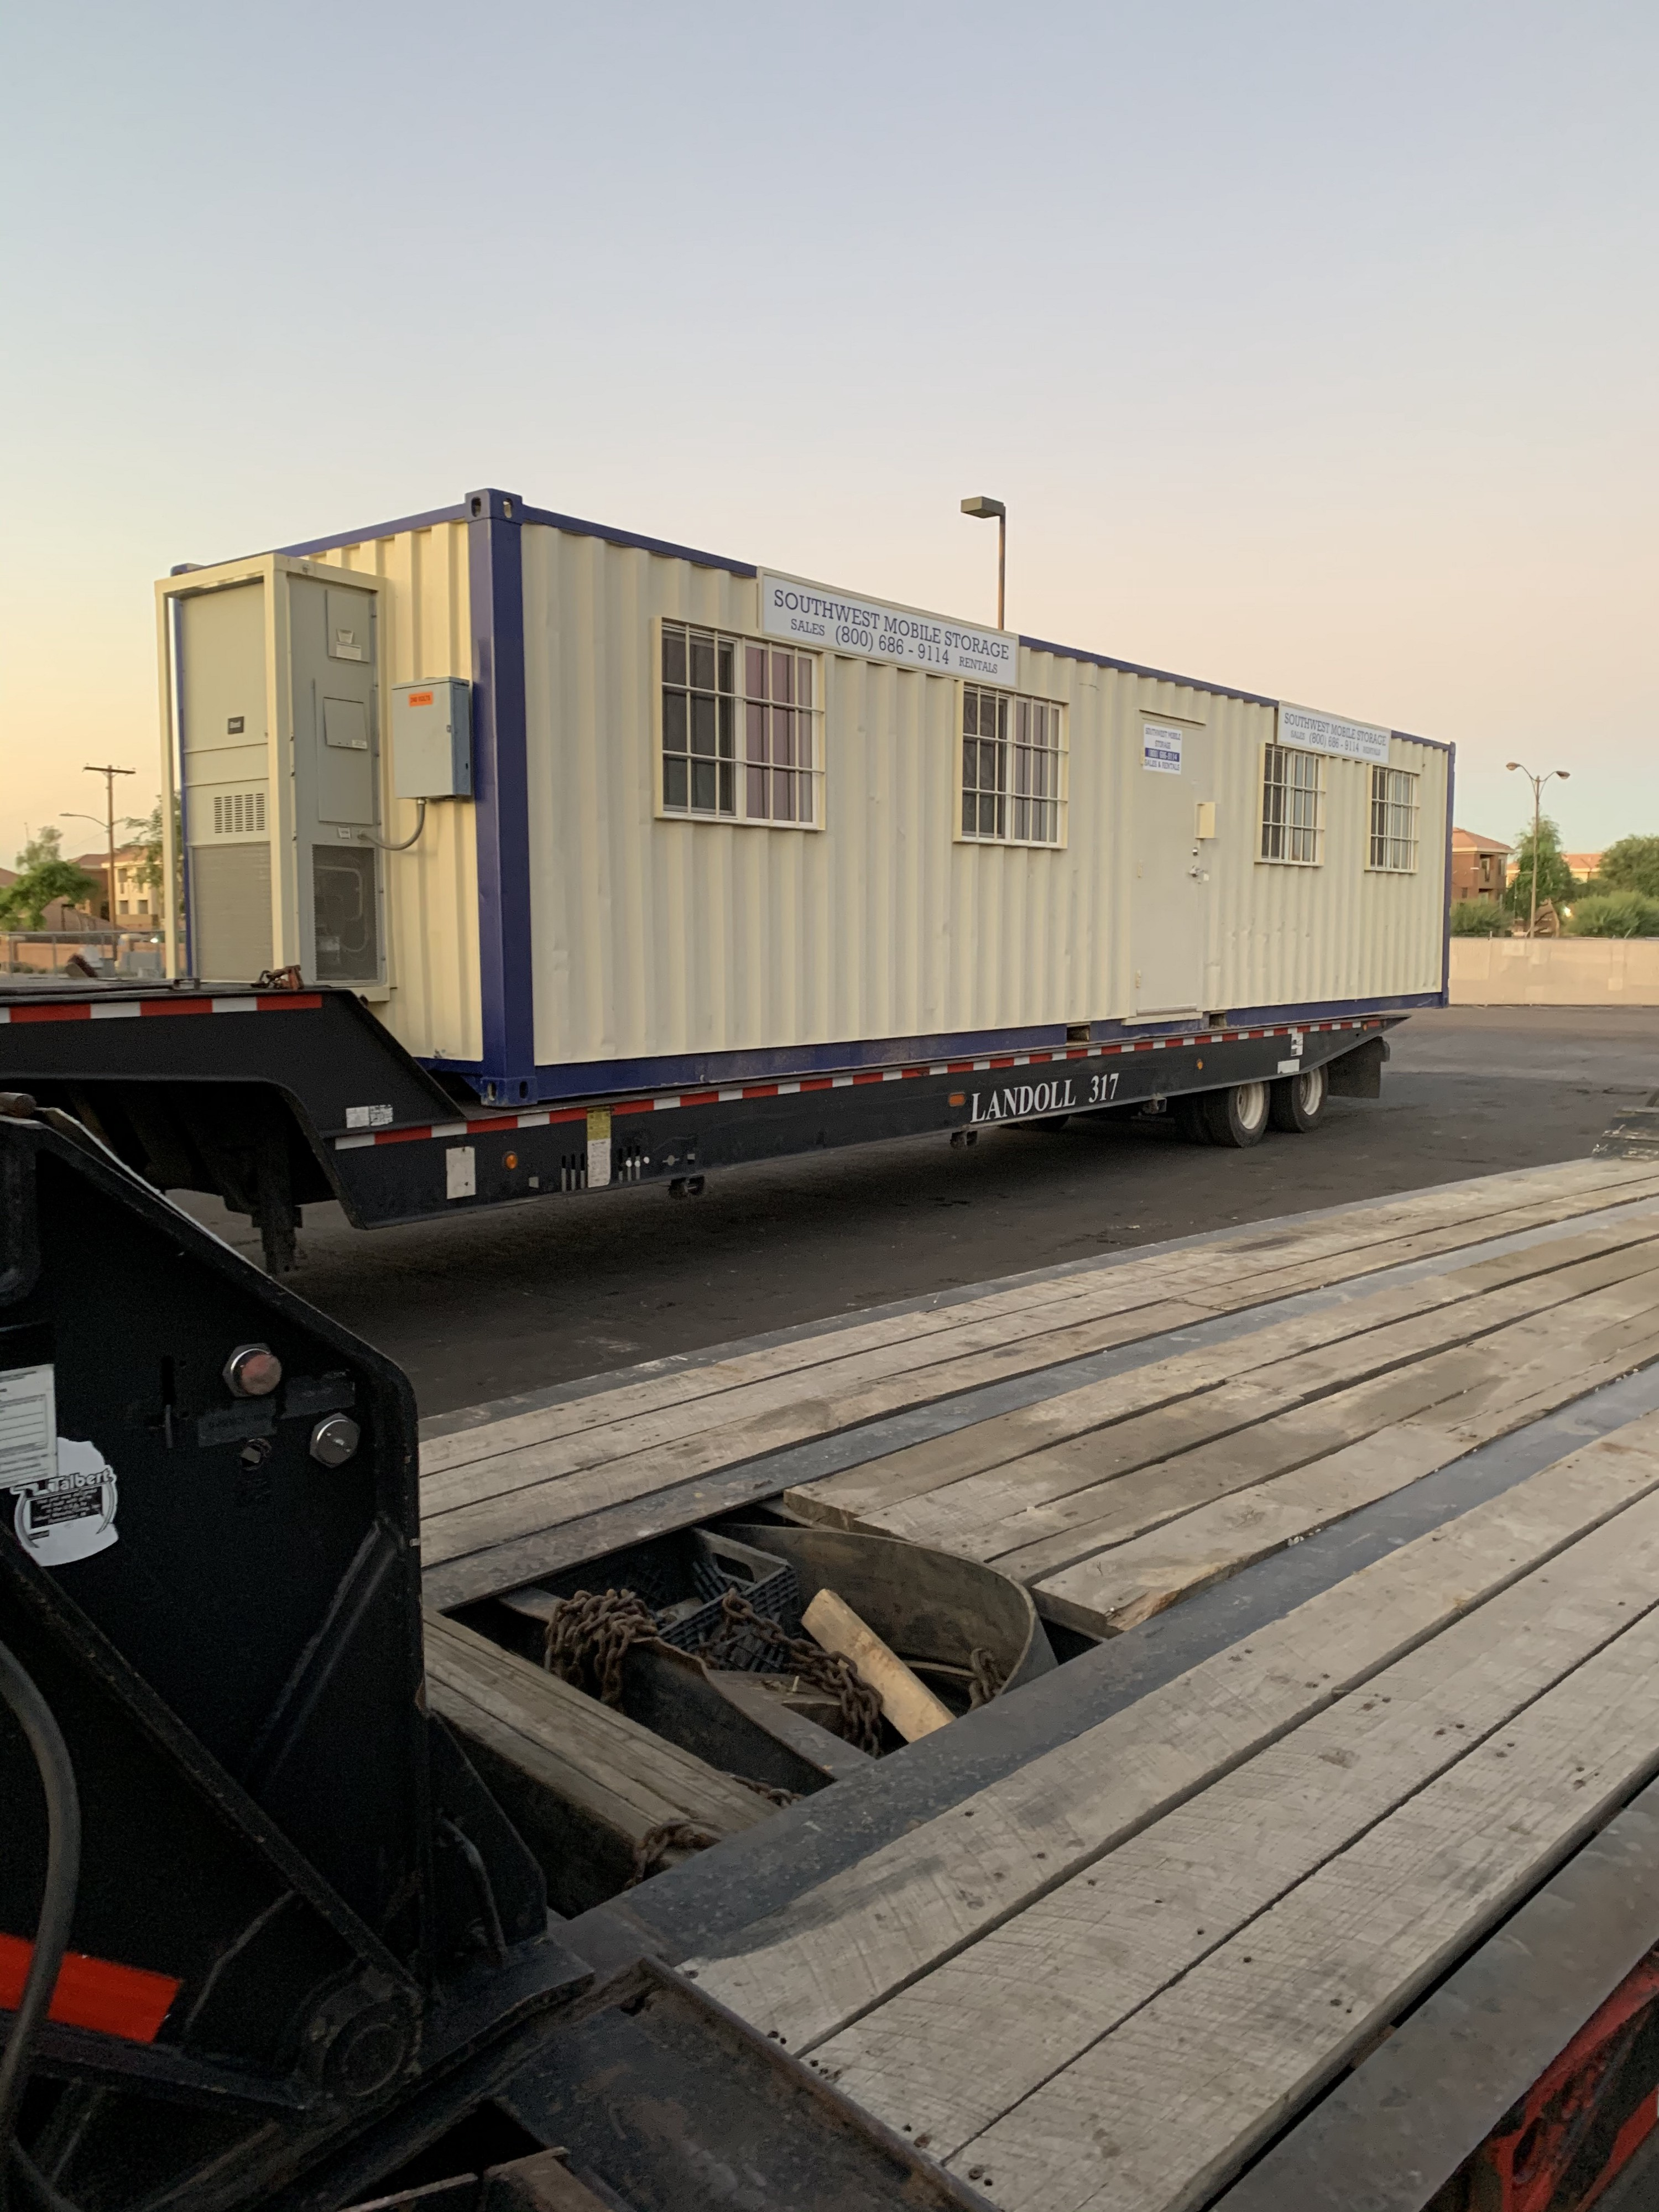 Southwest Mobile Storage Portable Shipping Container